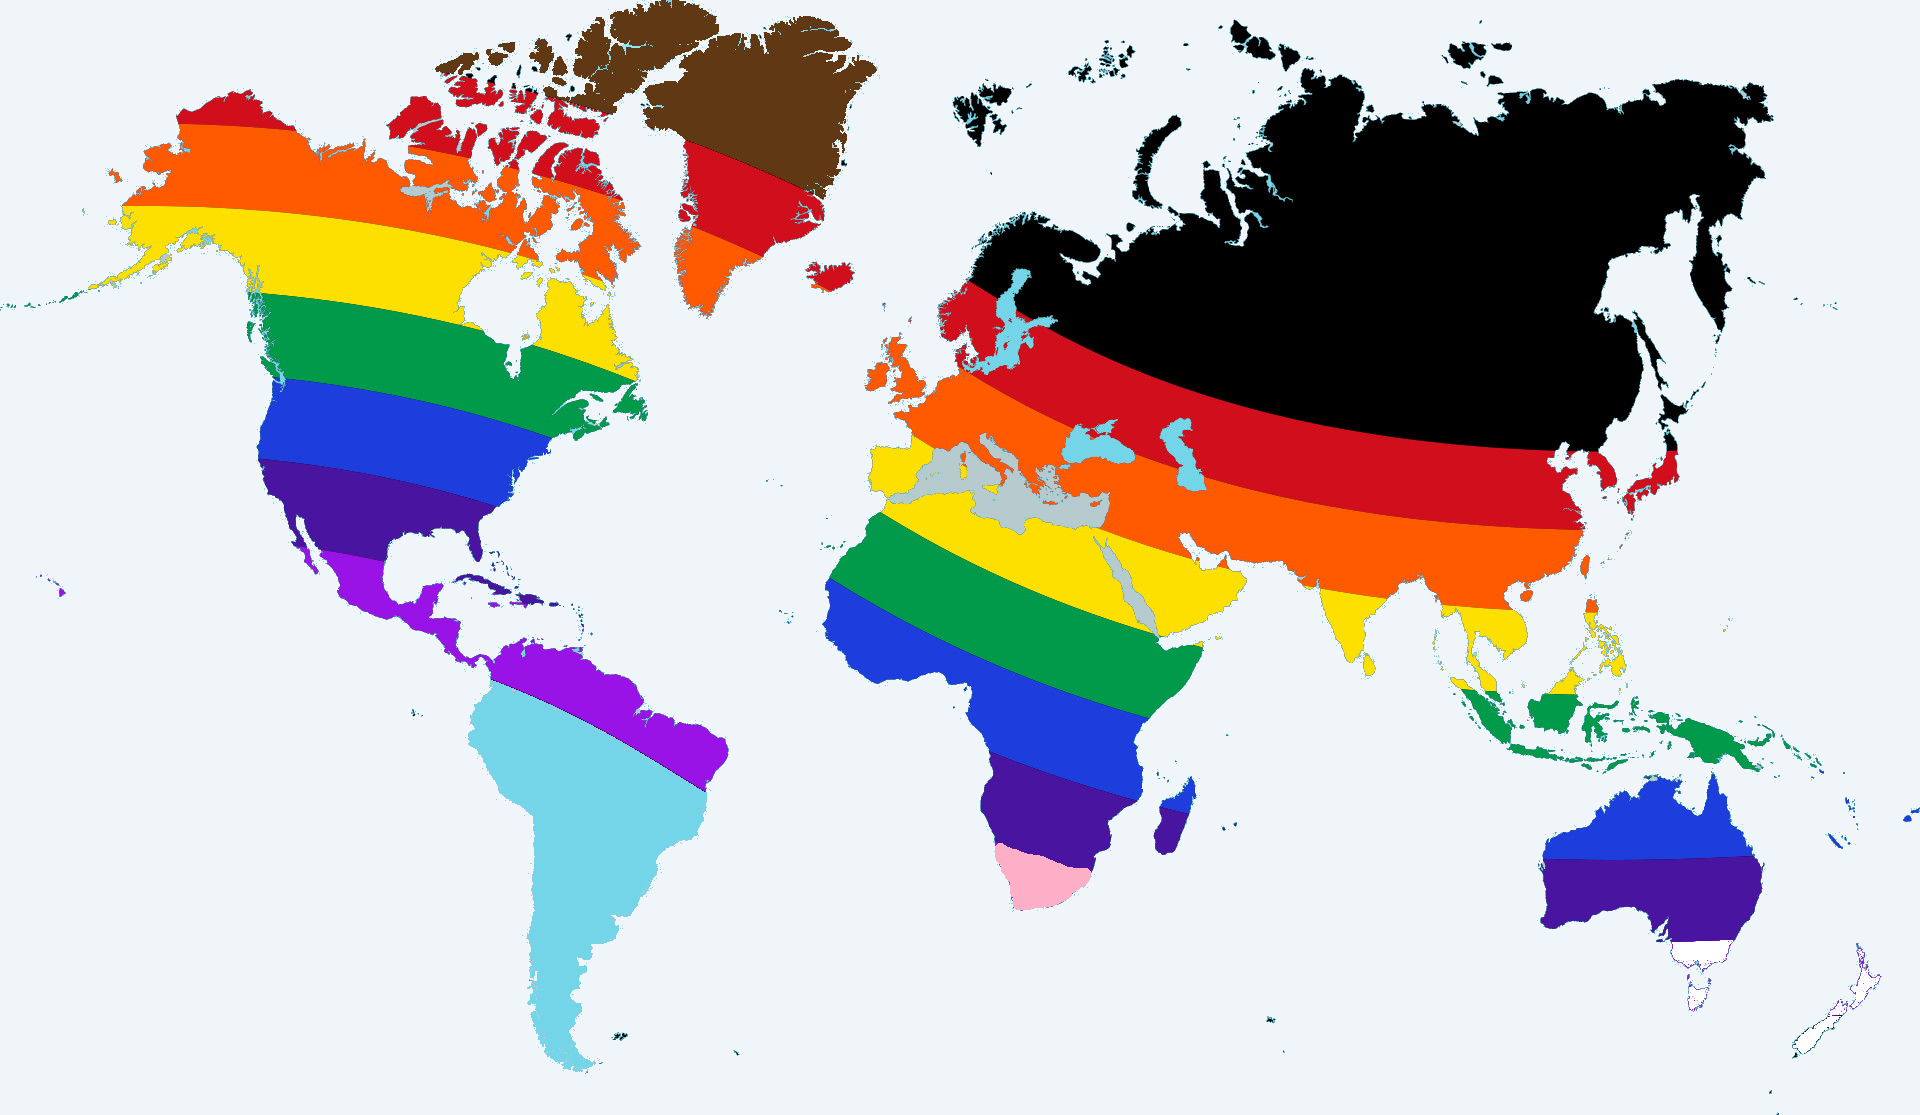 World map in pride colors